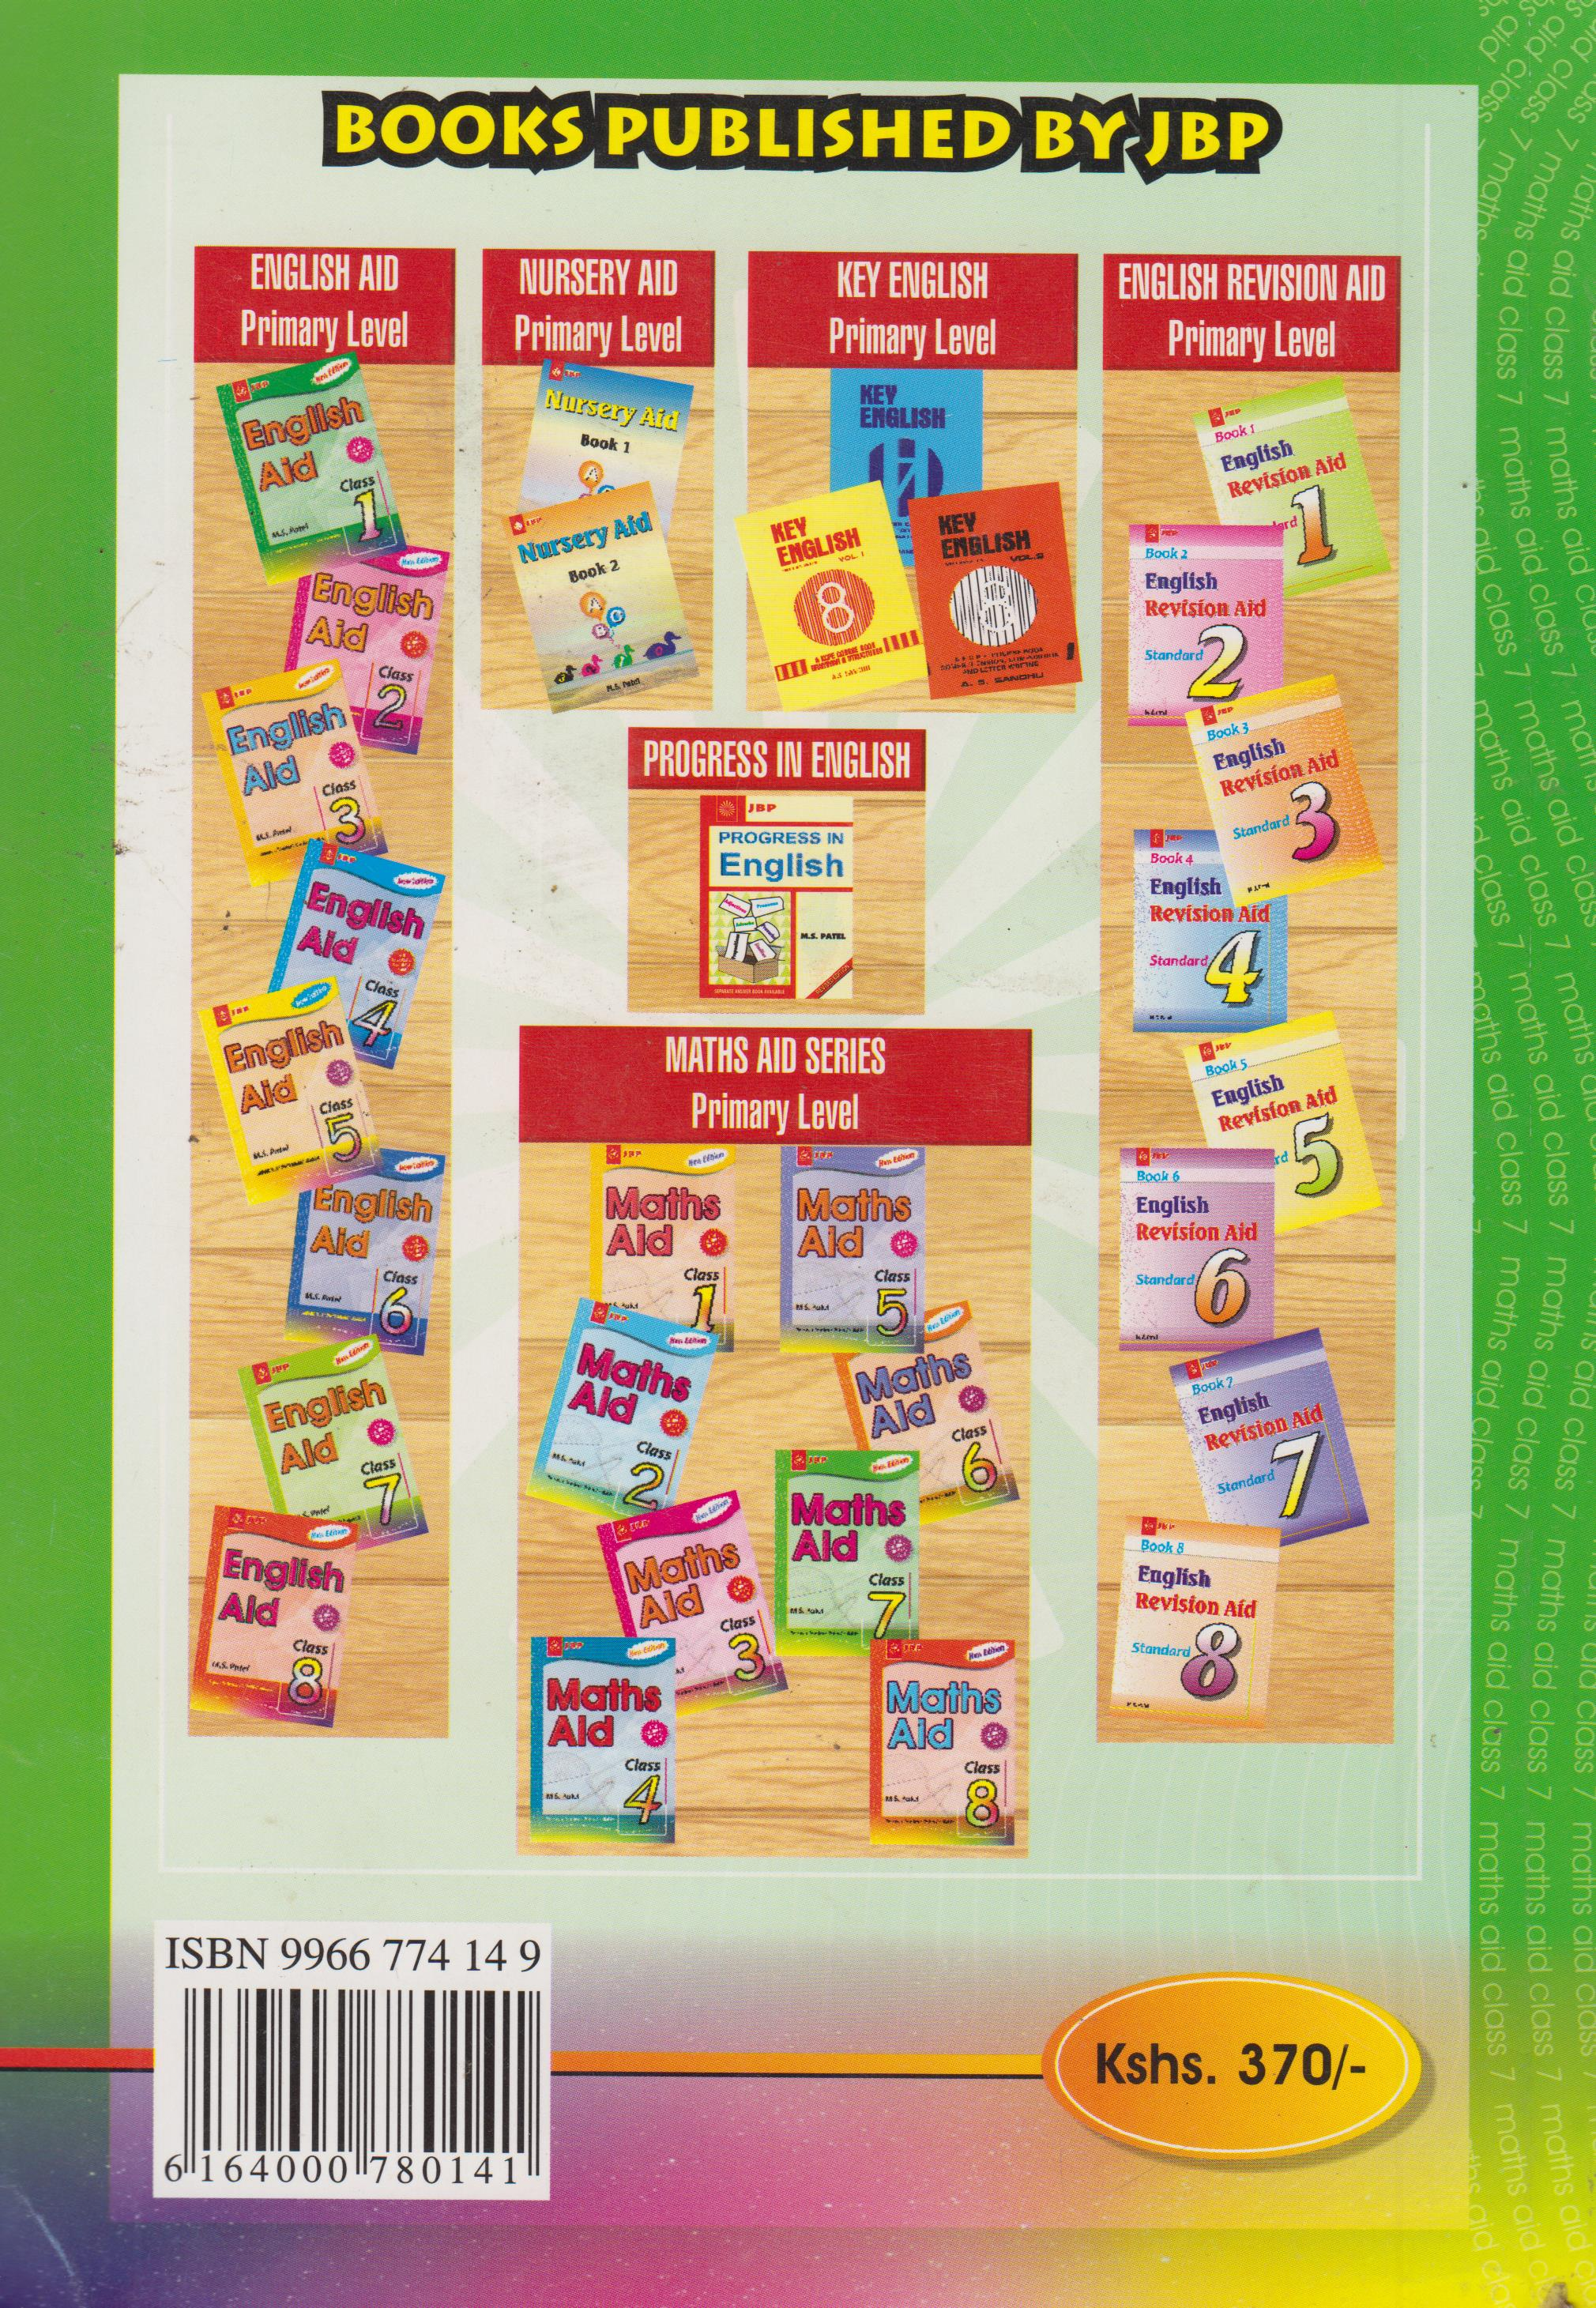 Maths Aid Class 7 | Books, Stationery, Computers, Laptops and more  Buy  online and get free delivery on orders above Ksh  2,000  Much more than a